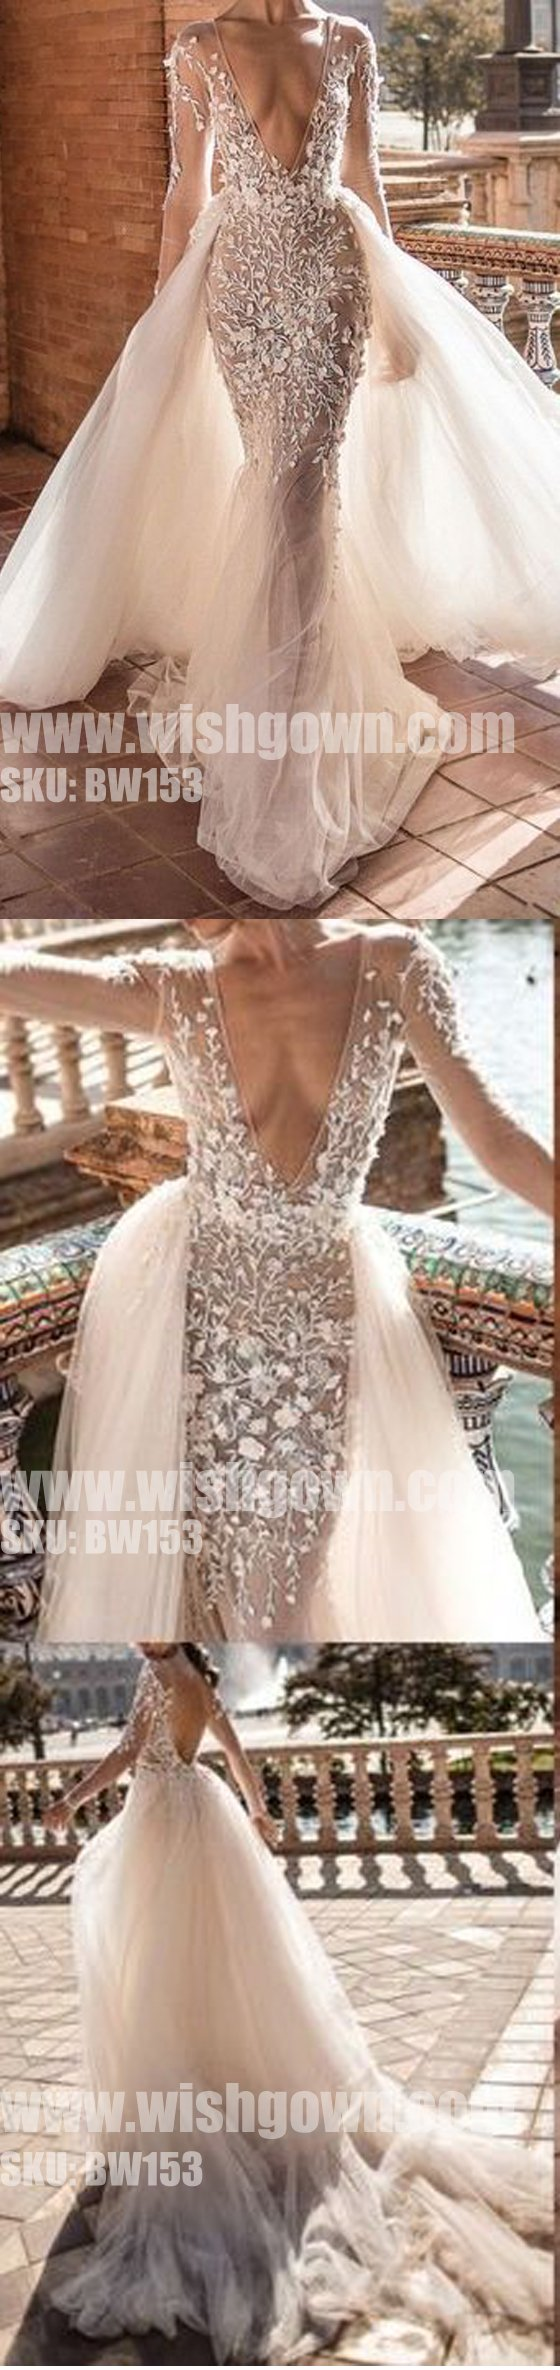 Sexy deep v neck long sleeves open back mermaid long wedding dresses